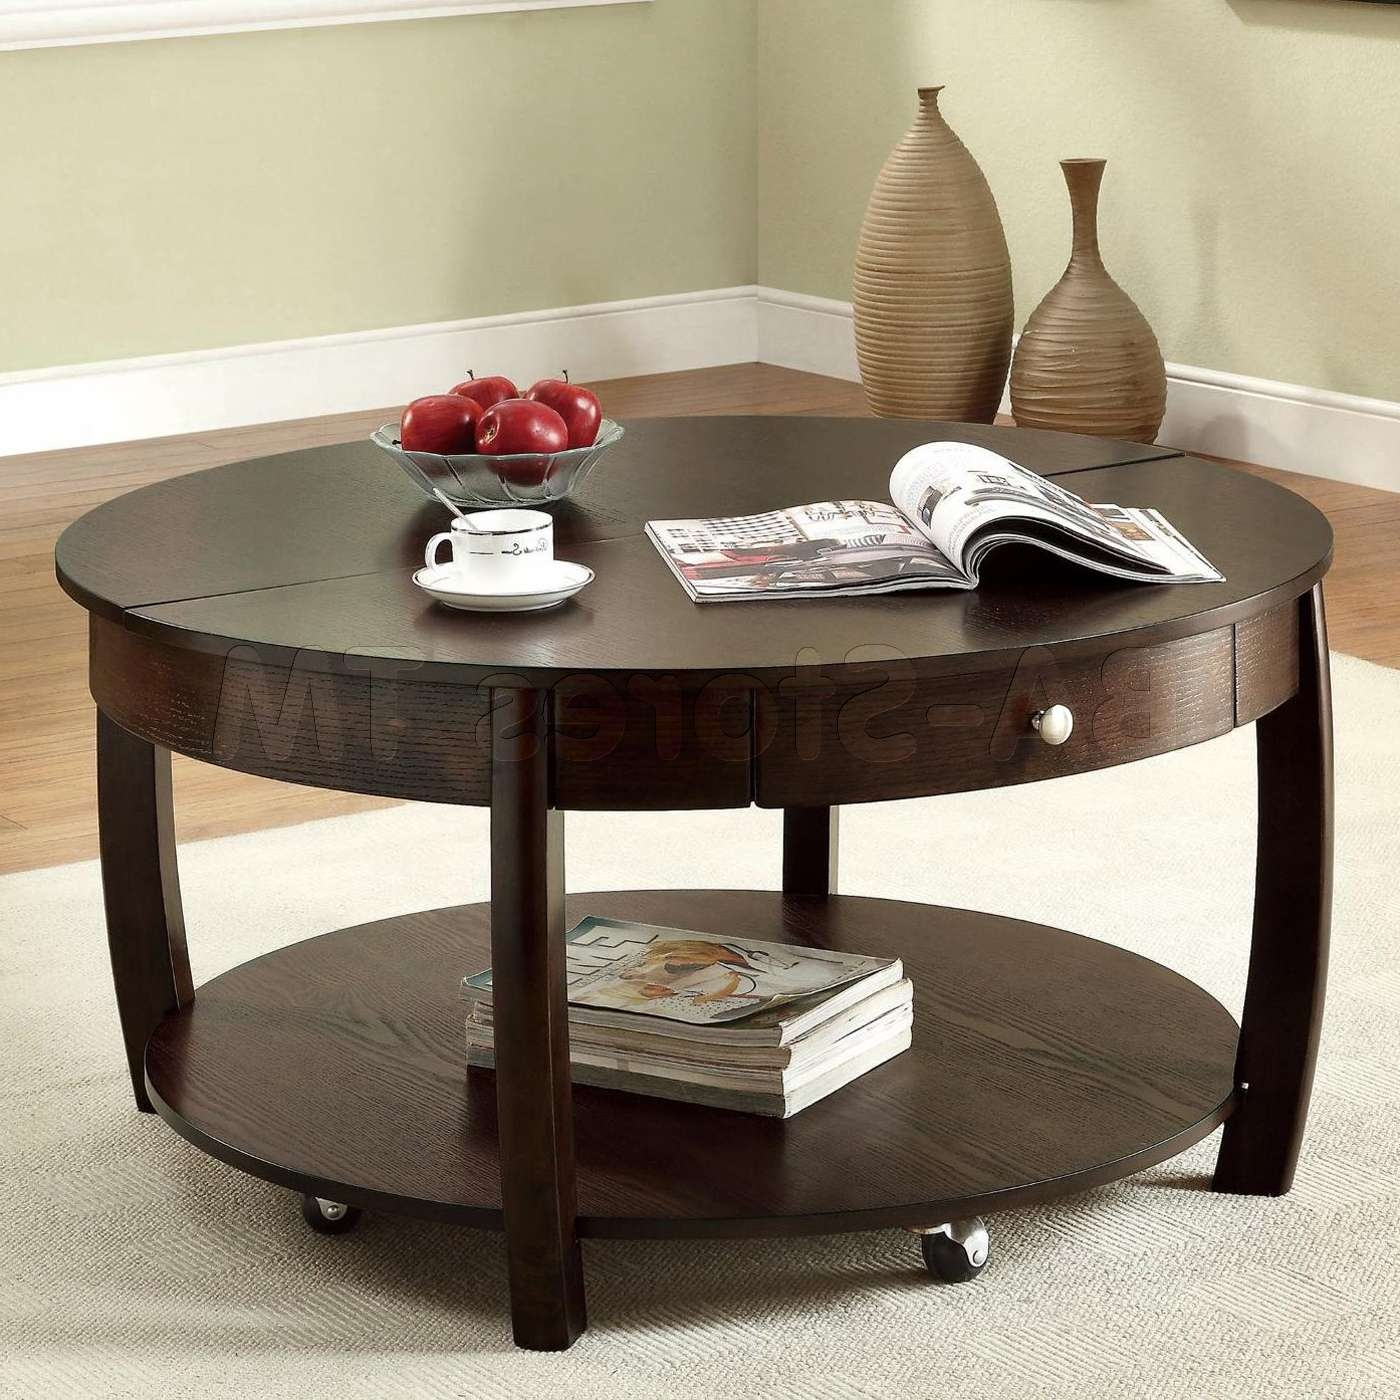 Famous Small Coffee Tables With Shelf In Coffee Tables Ideas: Unique Small Coffee Table With Storage Small (View 5 of 20)